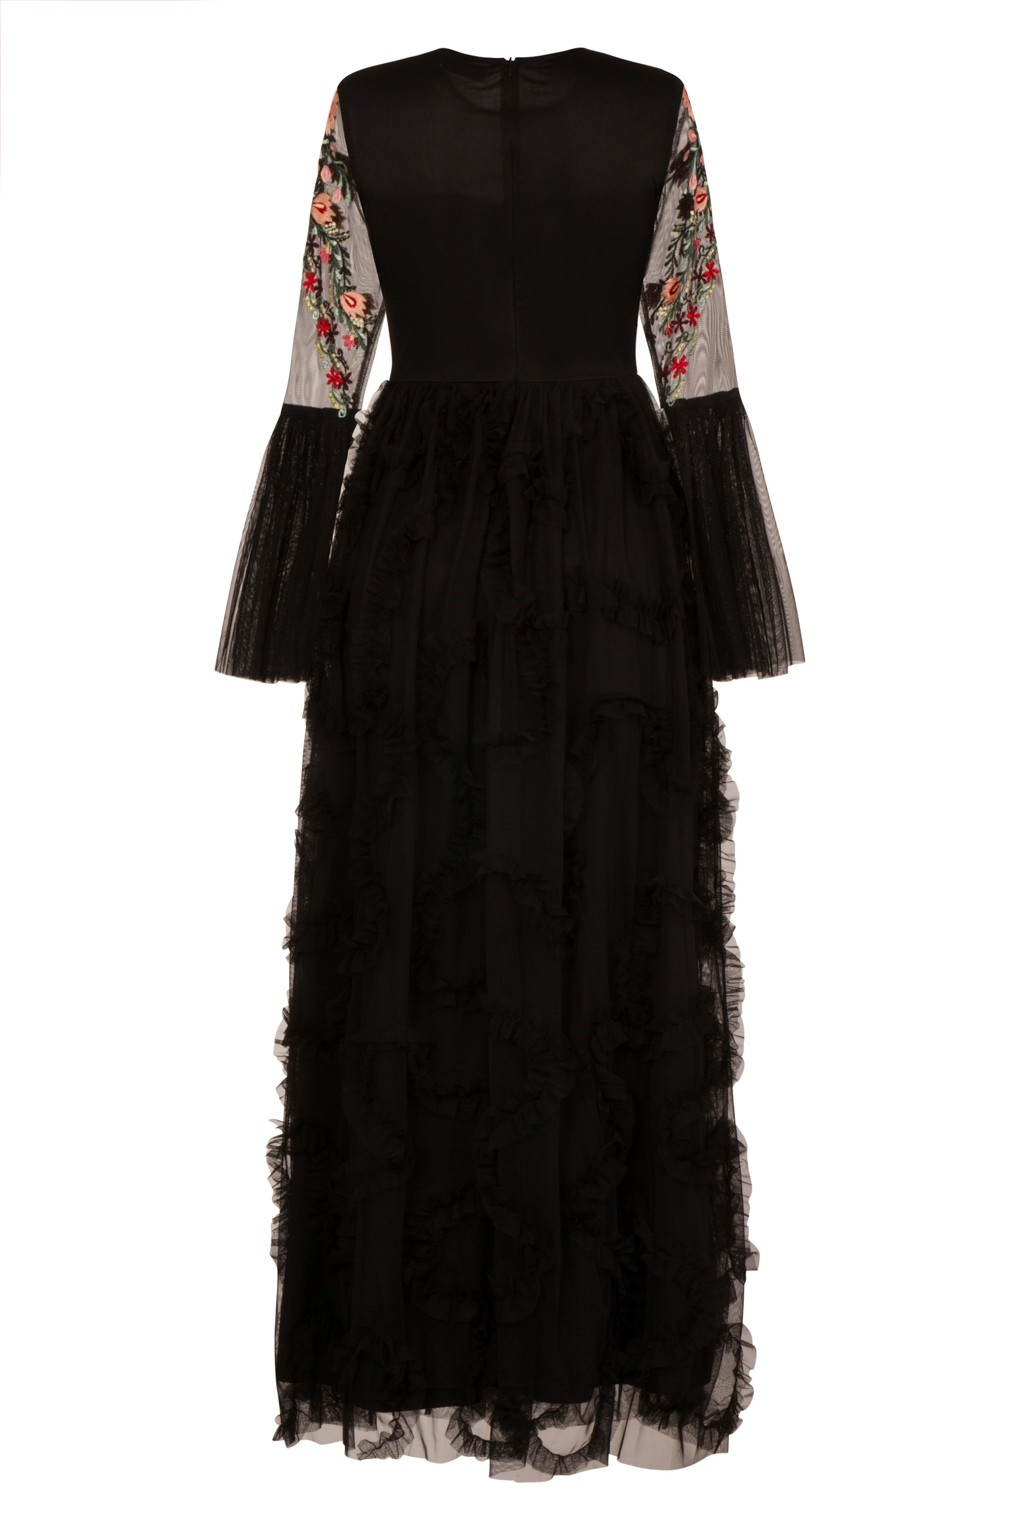 Lace Amp Beads Kya Black Maxi Dress Lace Amp Beads Dress